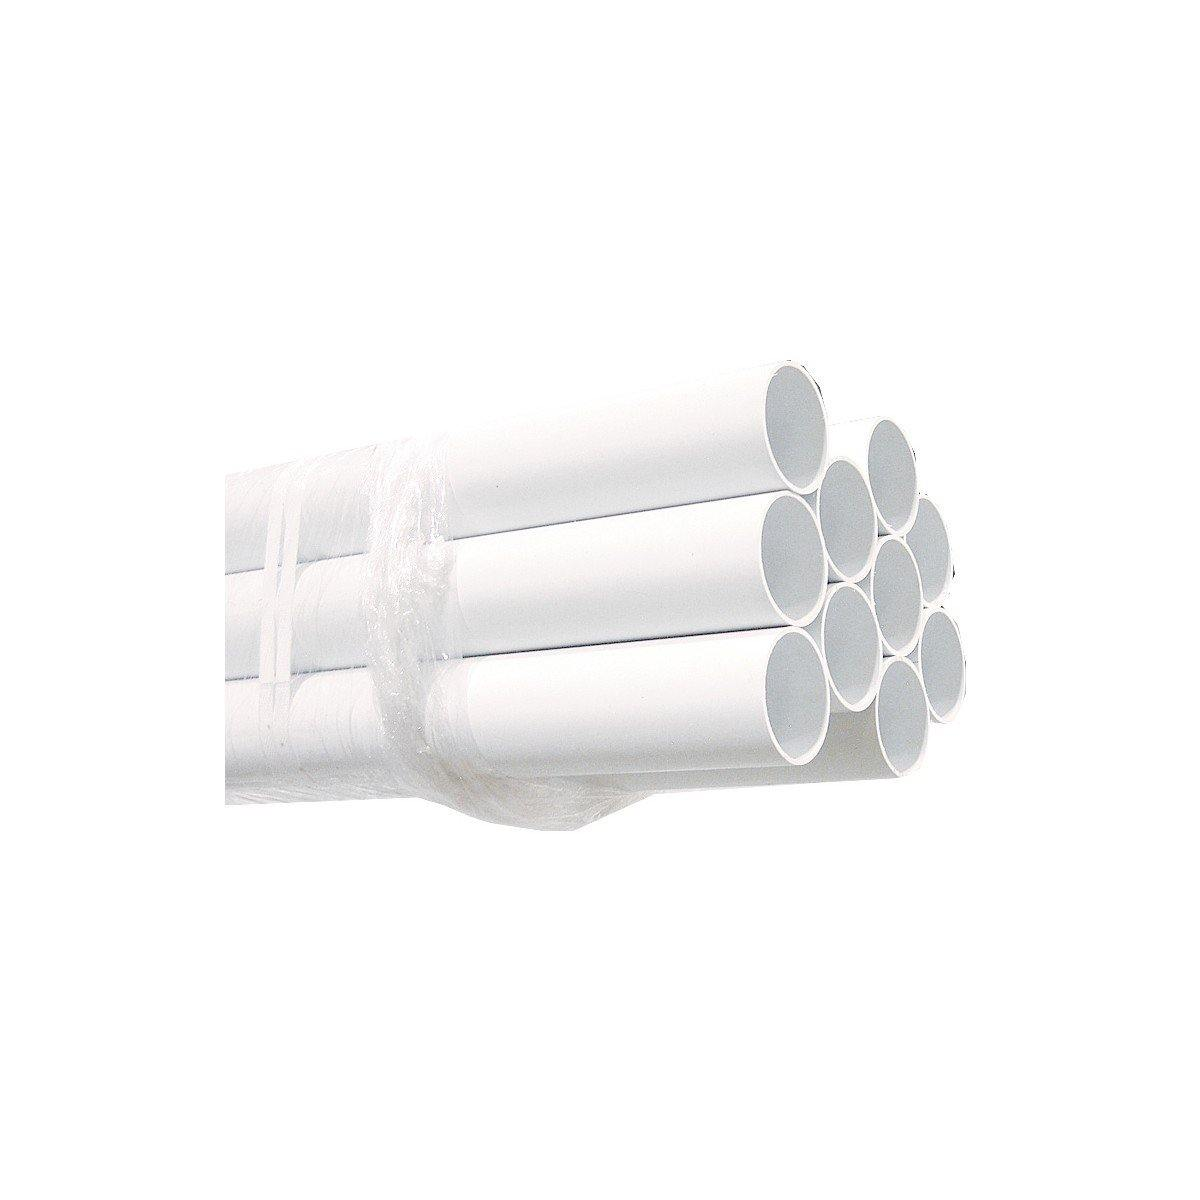 PVC Vacuum Pipe 2.5M - 10 Length